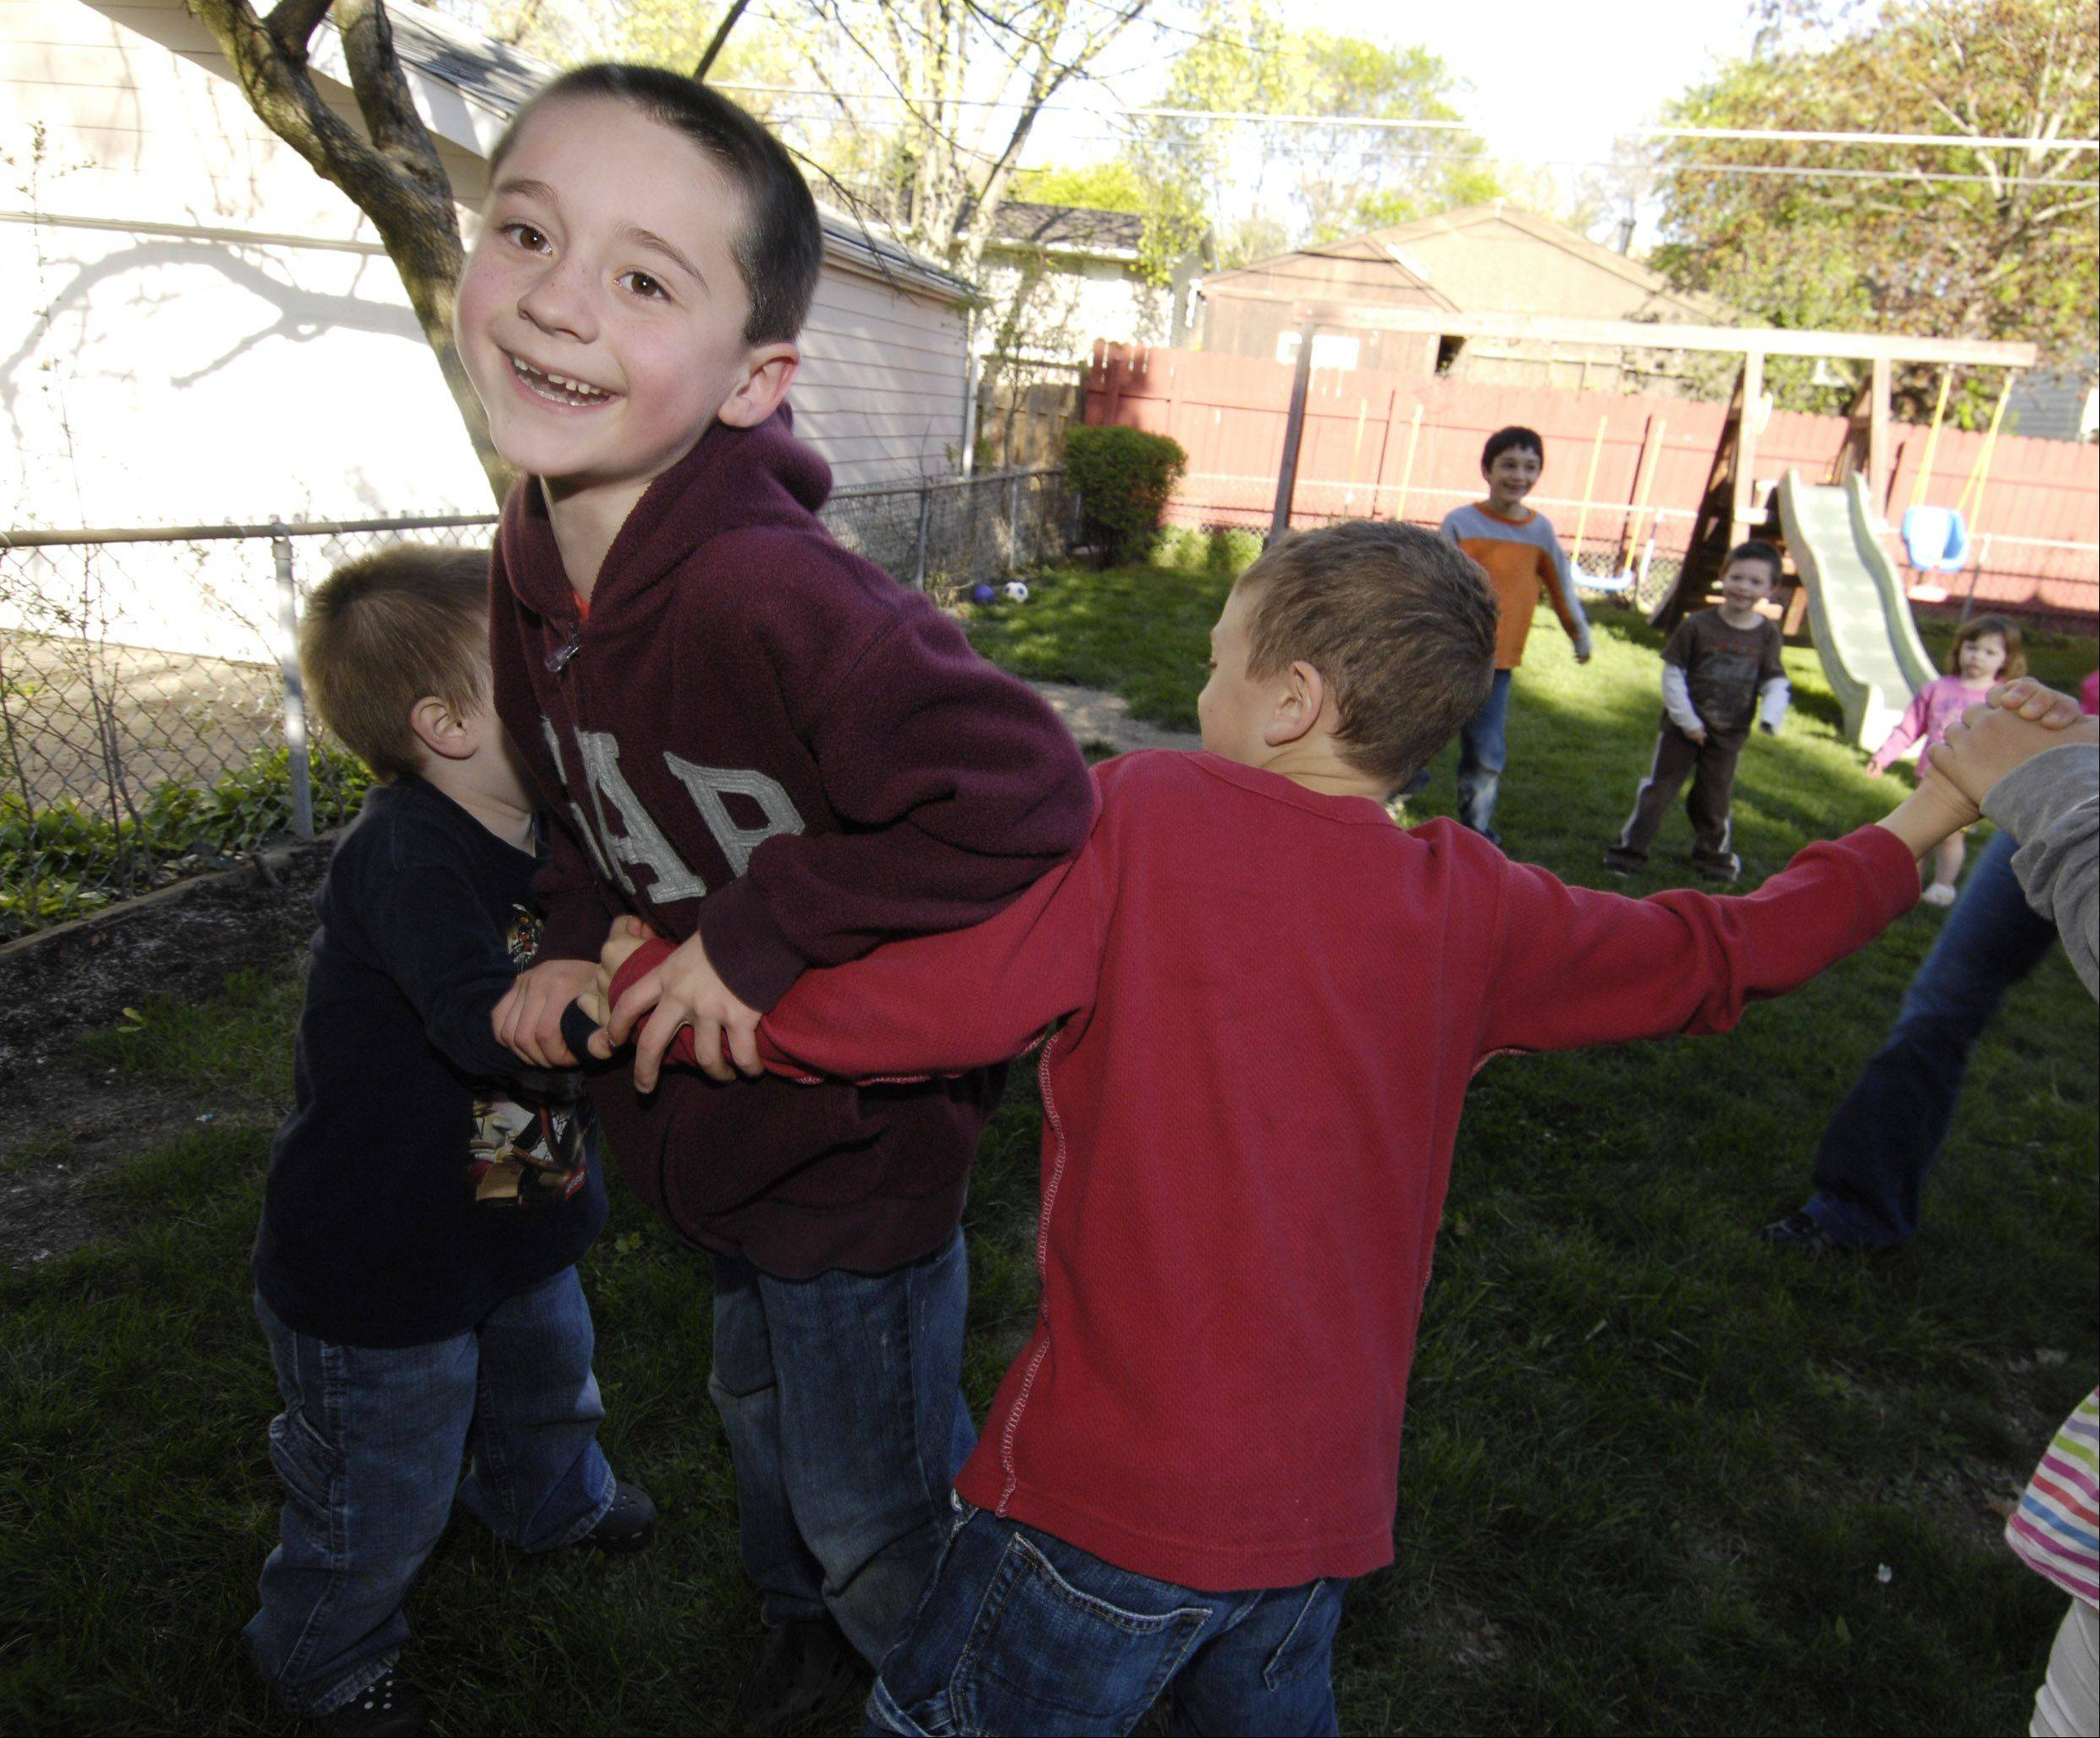 Travis Papievis, 6, tries to break through the line during a game of Red Rover.